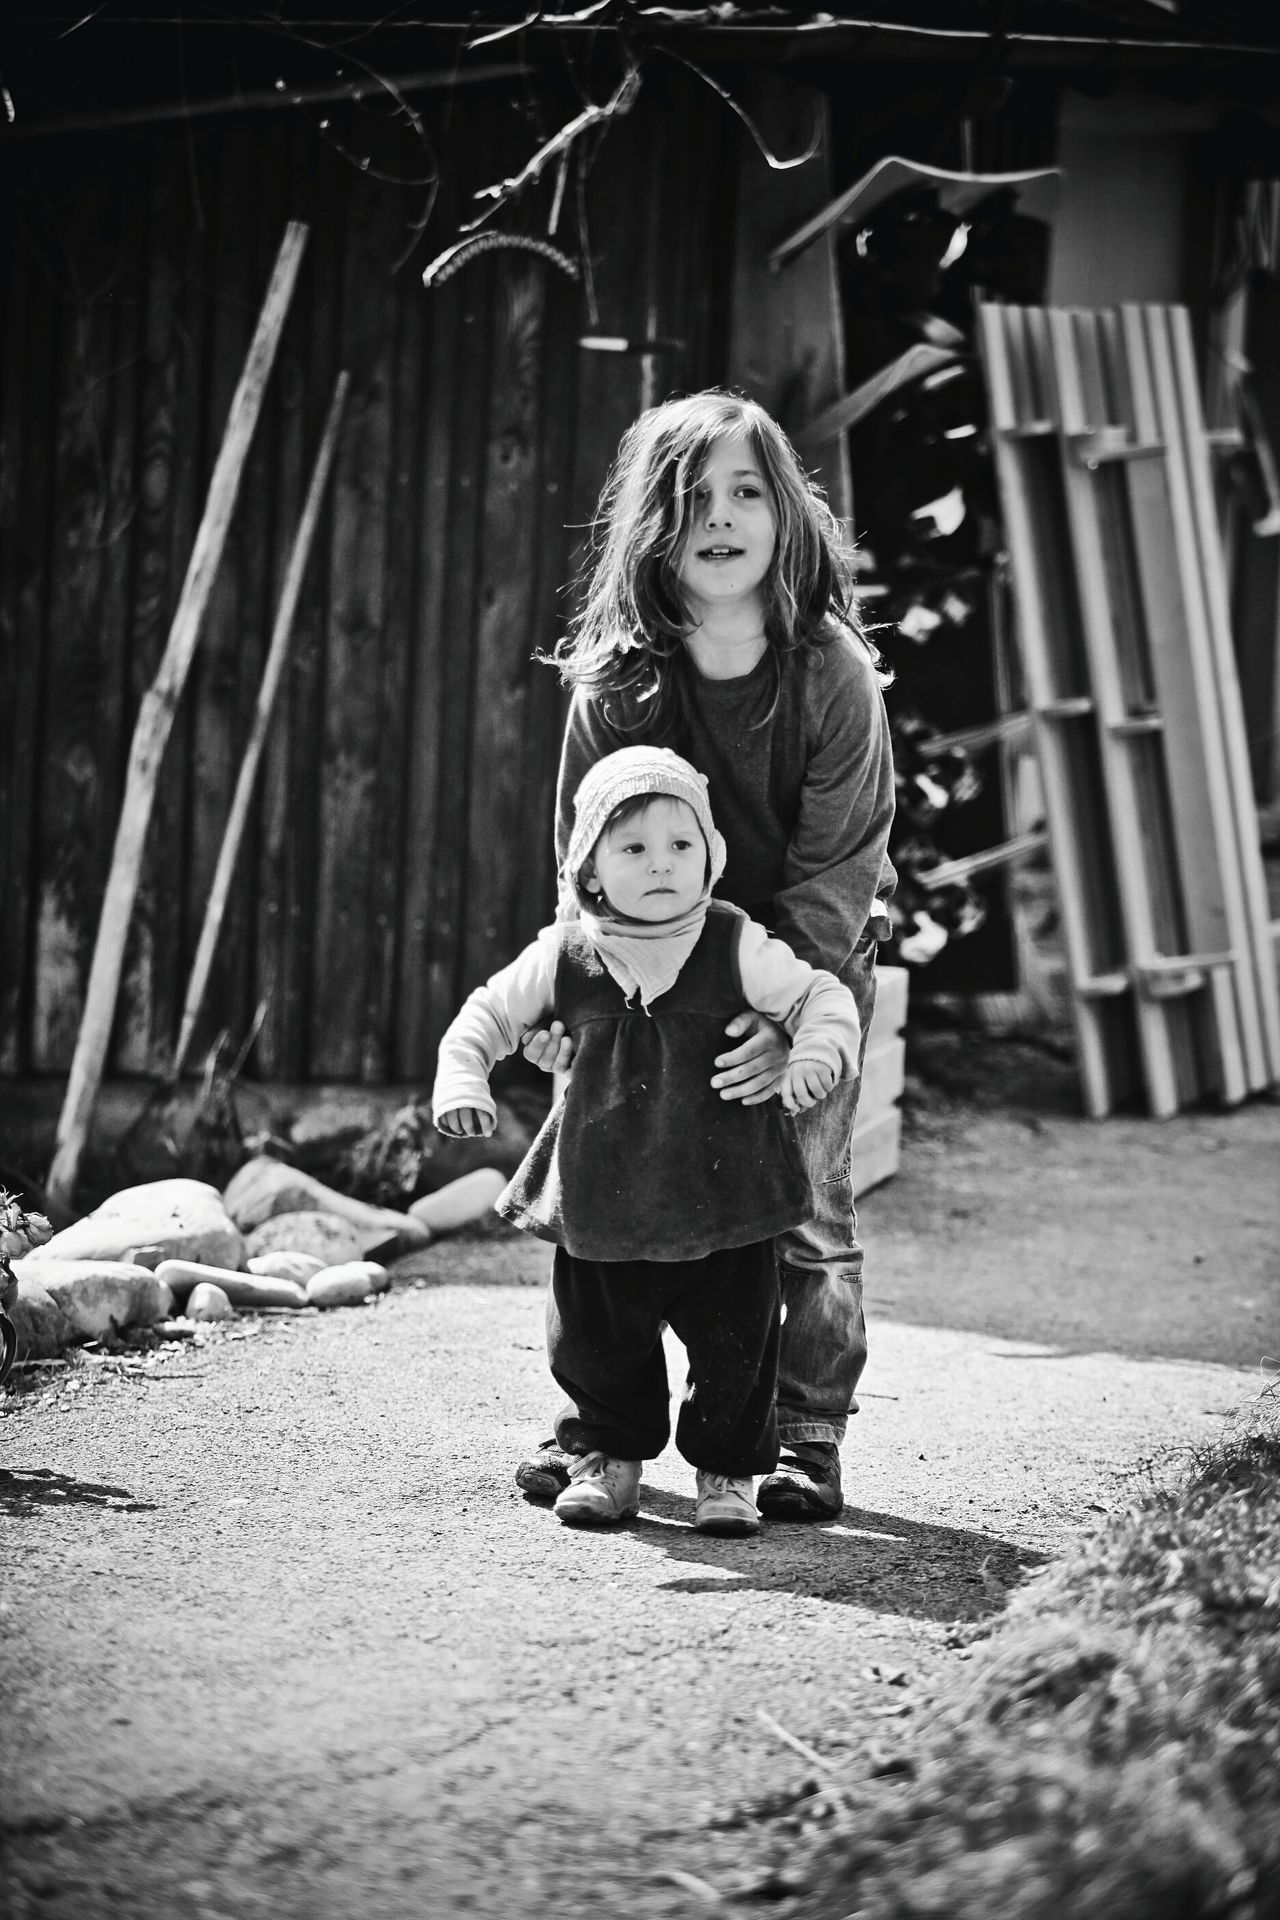 Child Children Only Childhood Boy Girl Big Brothers Little Girl Siblings Looking Looking Into The Future Two People People Exploring Life Enjoying Life Playing Togetherness Black & White Black And White Blackandwhite